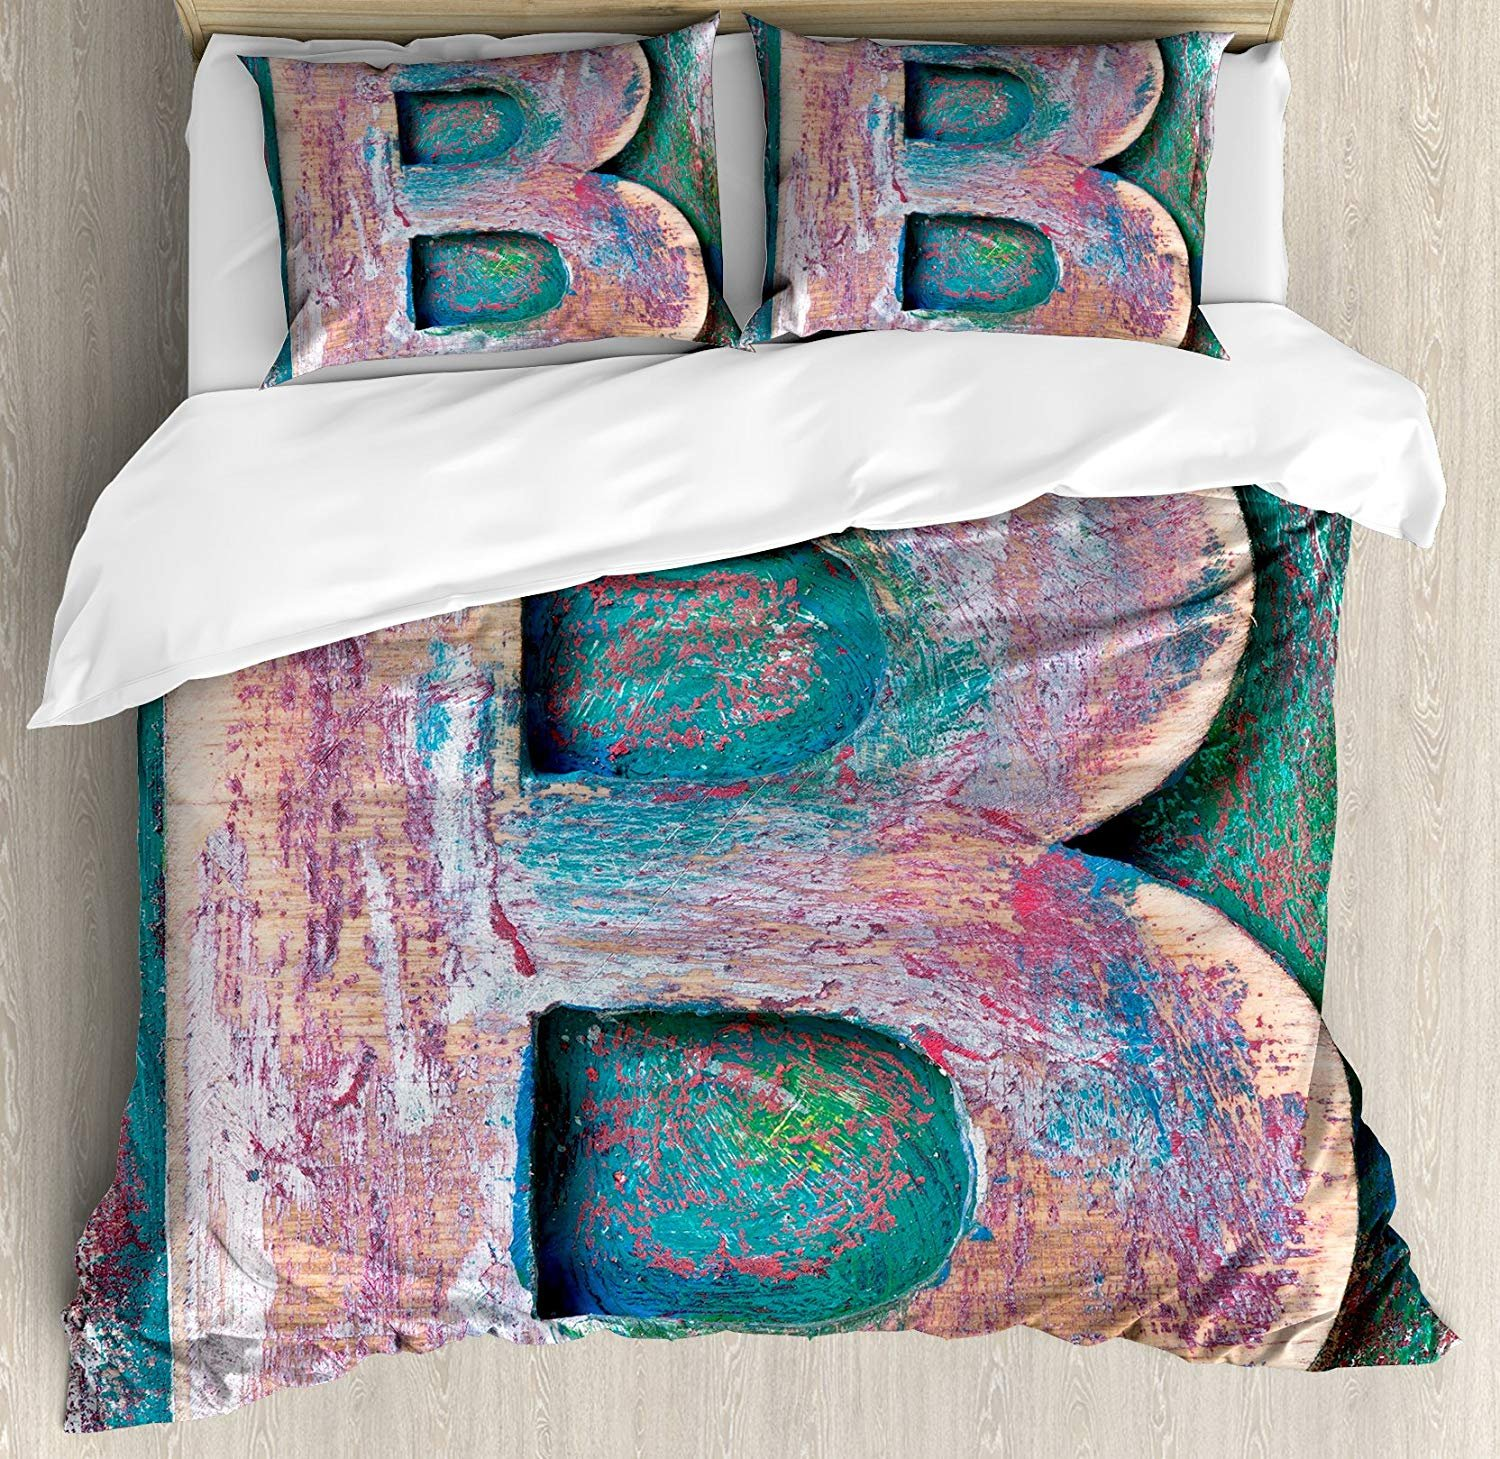 Letter B Twin Duvet Cover Sets 4 Piece Bedding Set Bedspread with 2 Pillow Sham, Flat Sheet for Adult/Kids/Teens, Old Fashioned Print Method Wood Block Alphabet ABC Type Worn Capital B